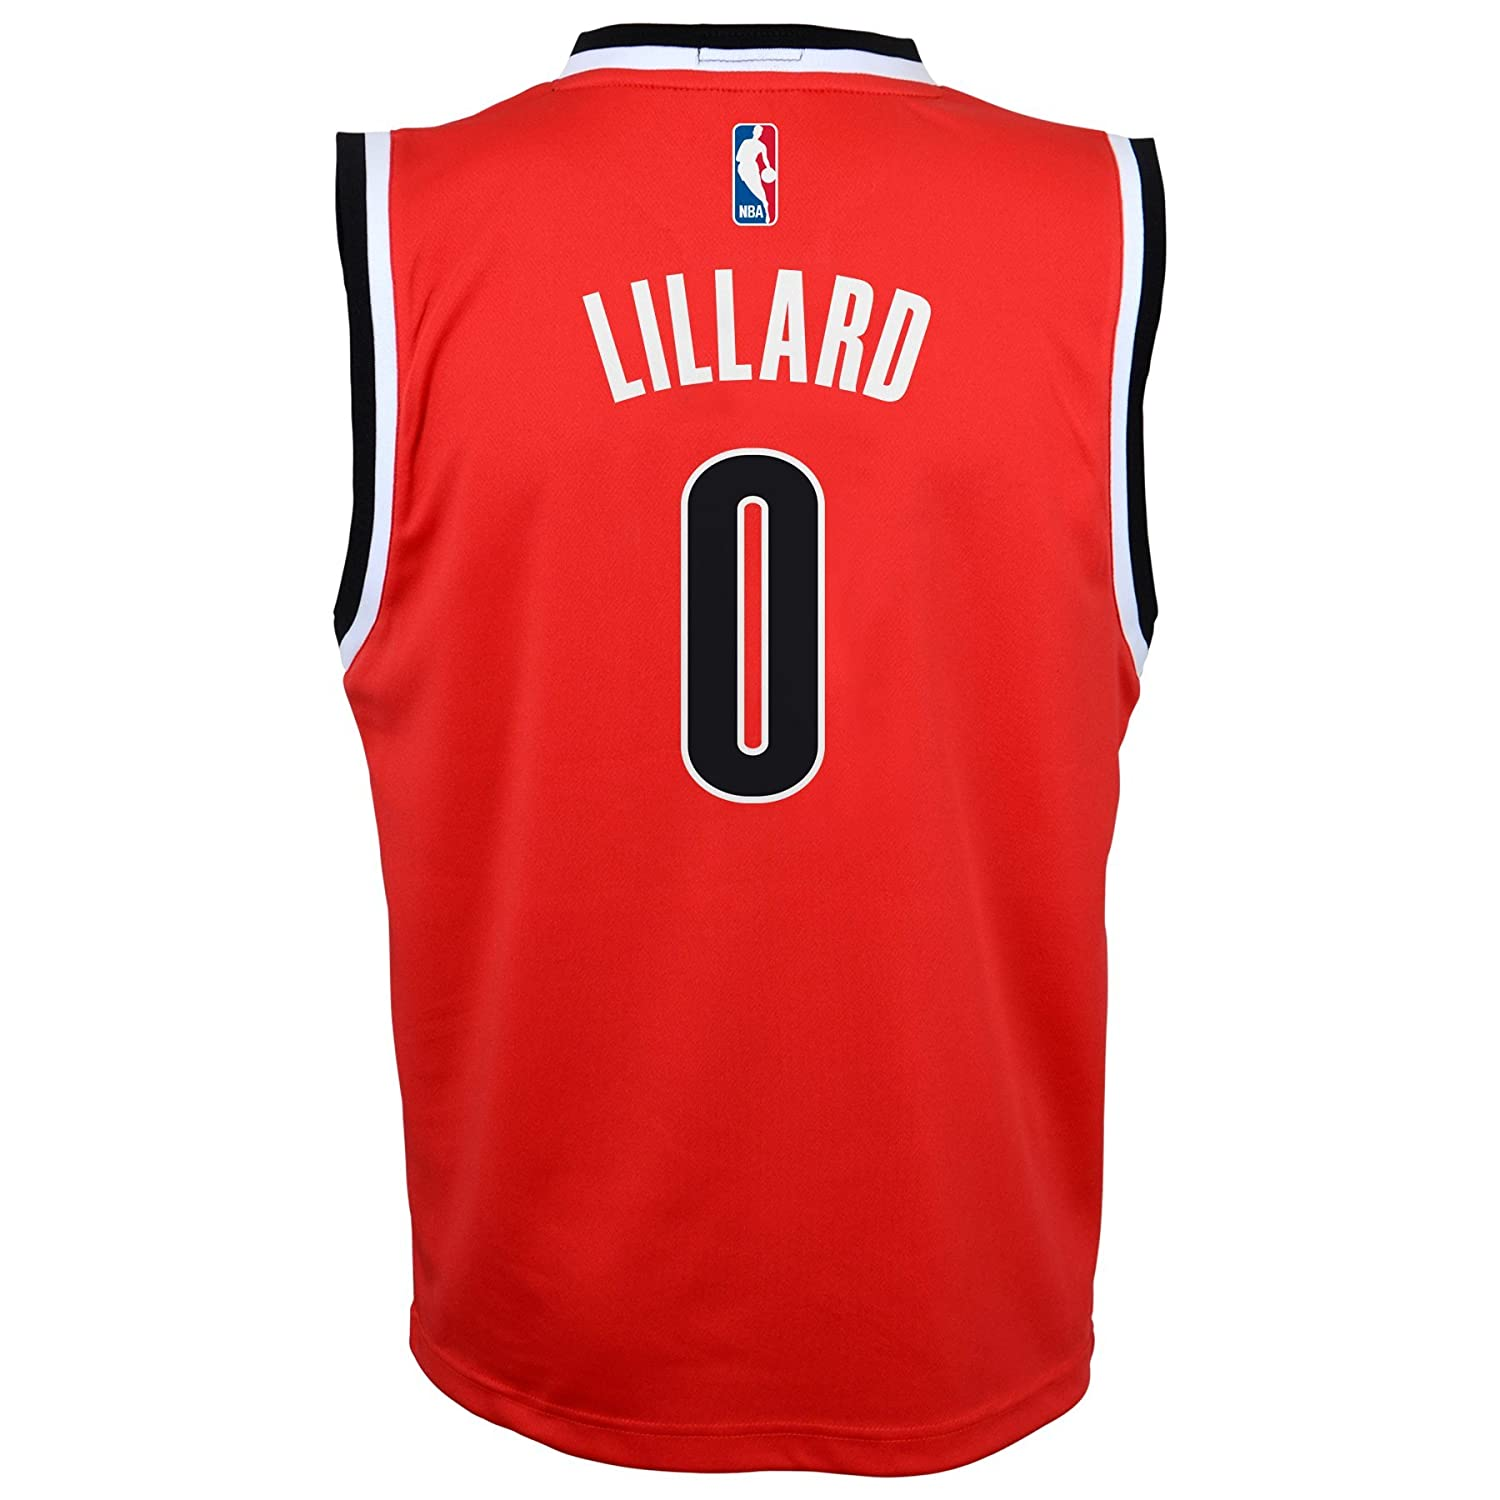 huge selection of 09c01 ced16 NBA Youth 8-20 Portland Trail Blazers Lillard Replica Alternate  Jersey-Red-S(8)